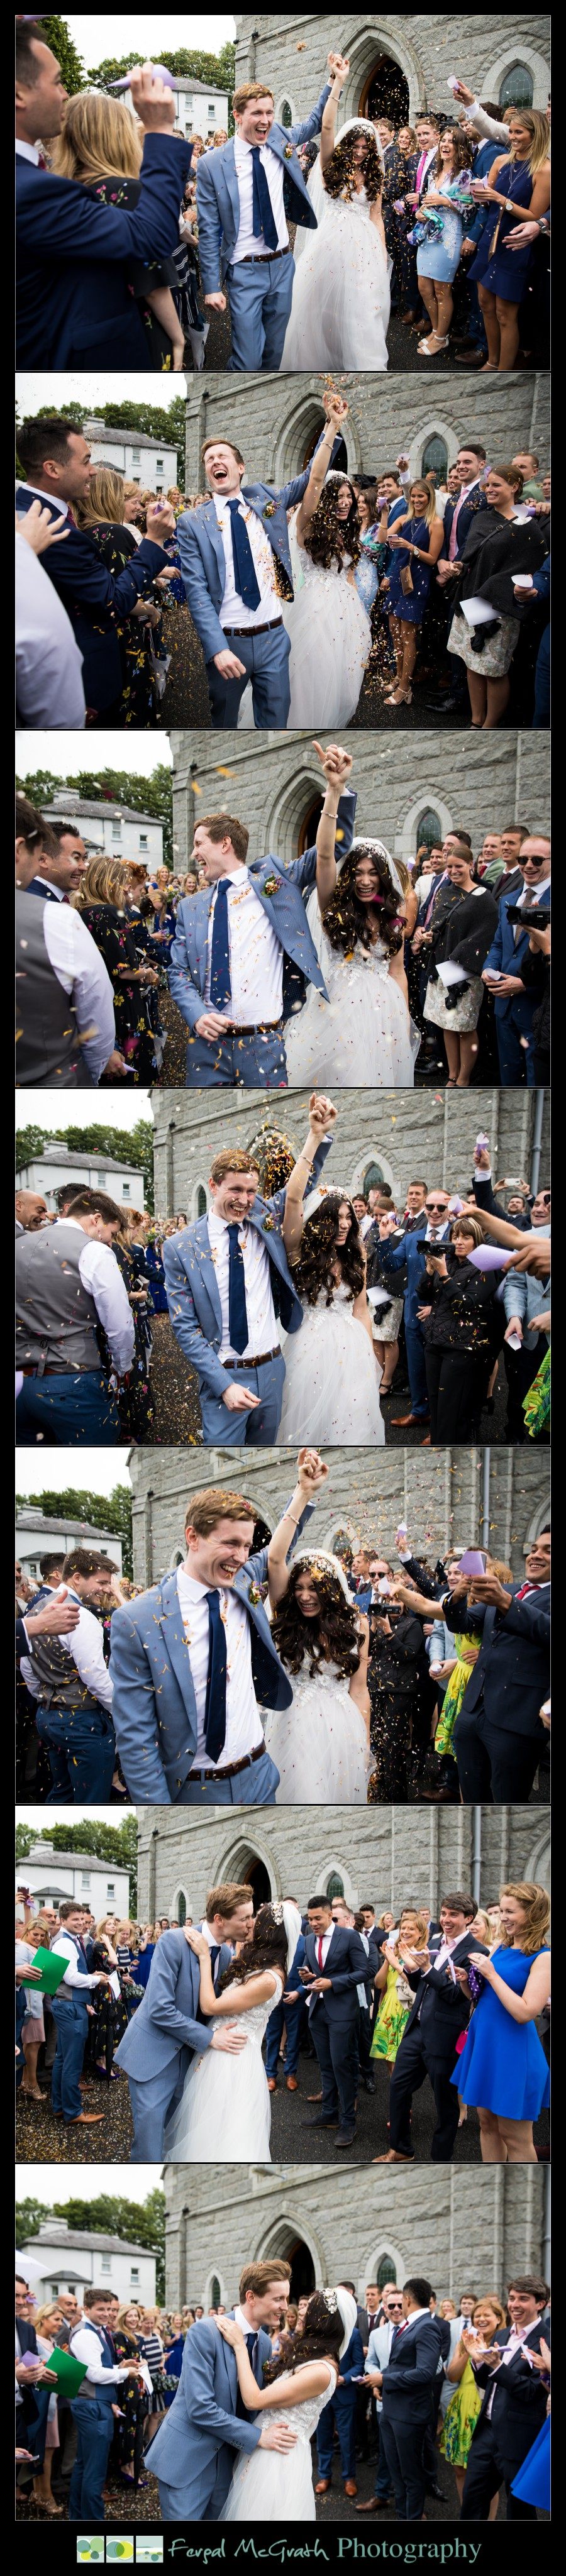 Markree Castle Wedding throwing confetti on the bride and groom